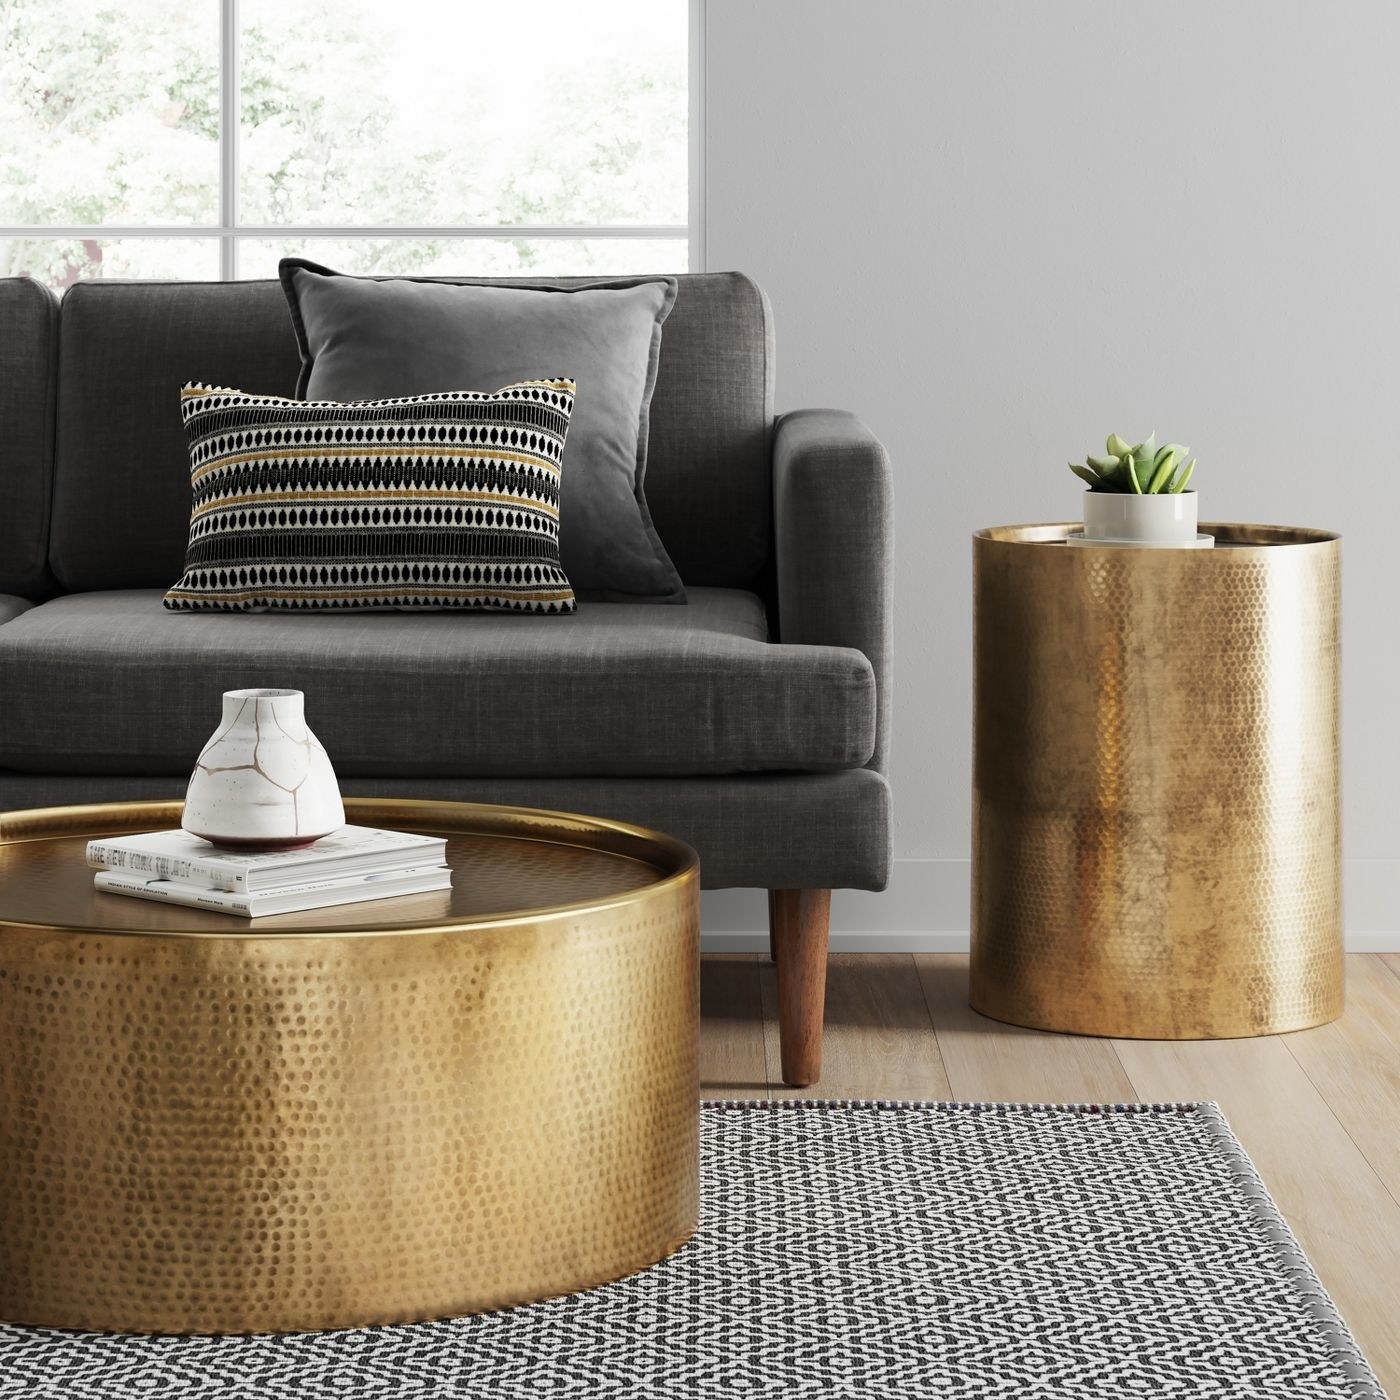 A gold drum accent end table next to a couch and matching coffee table